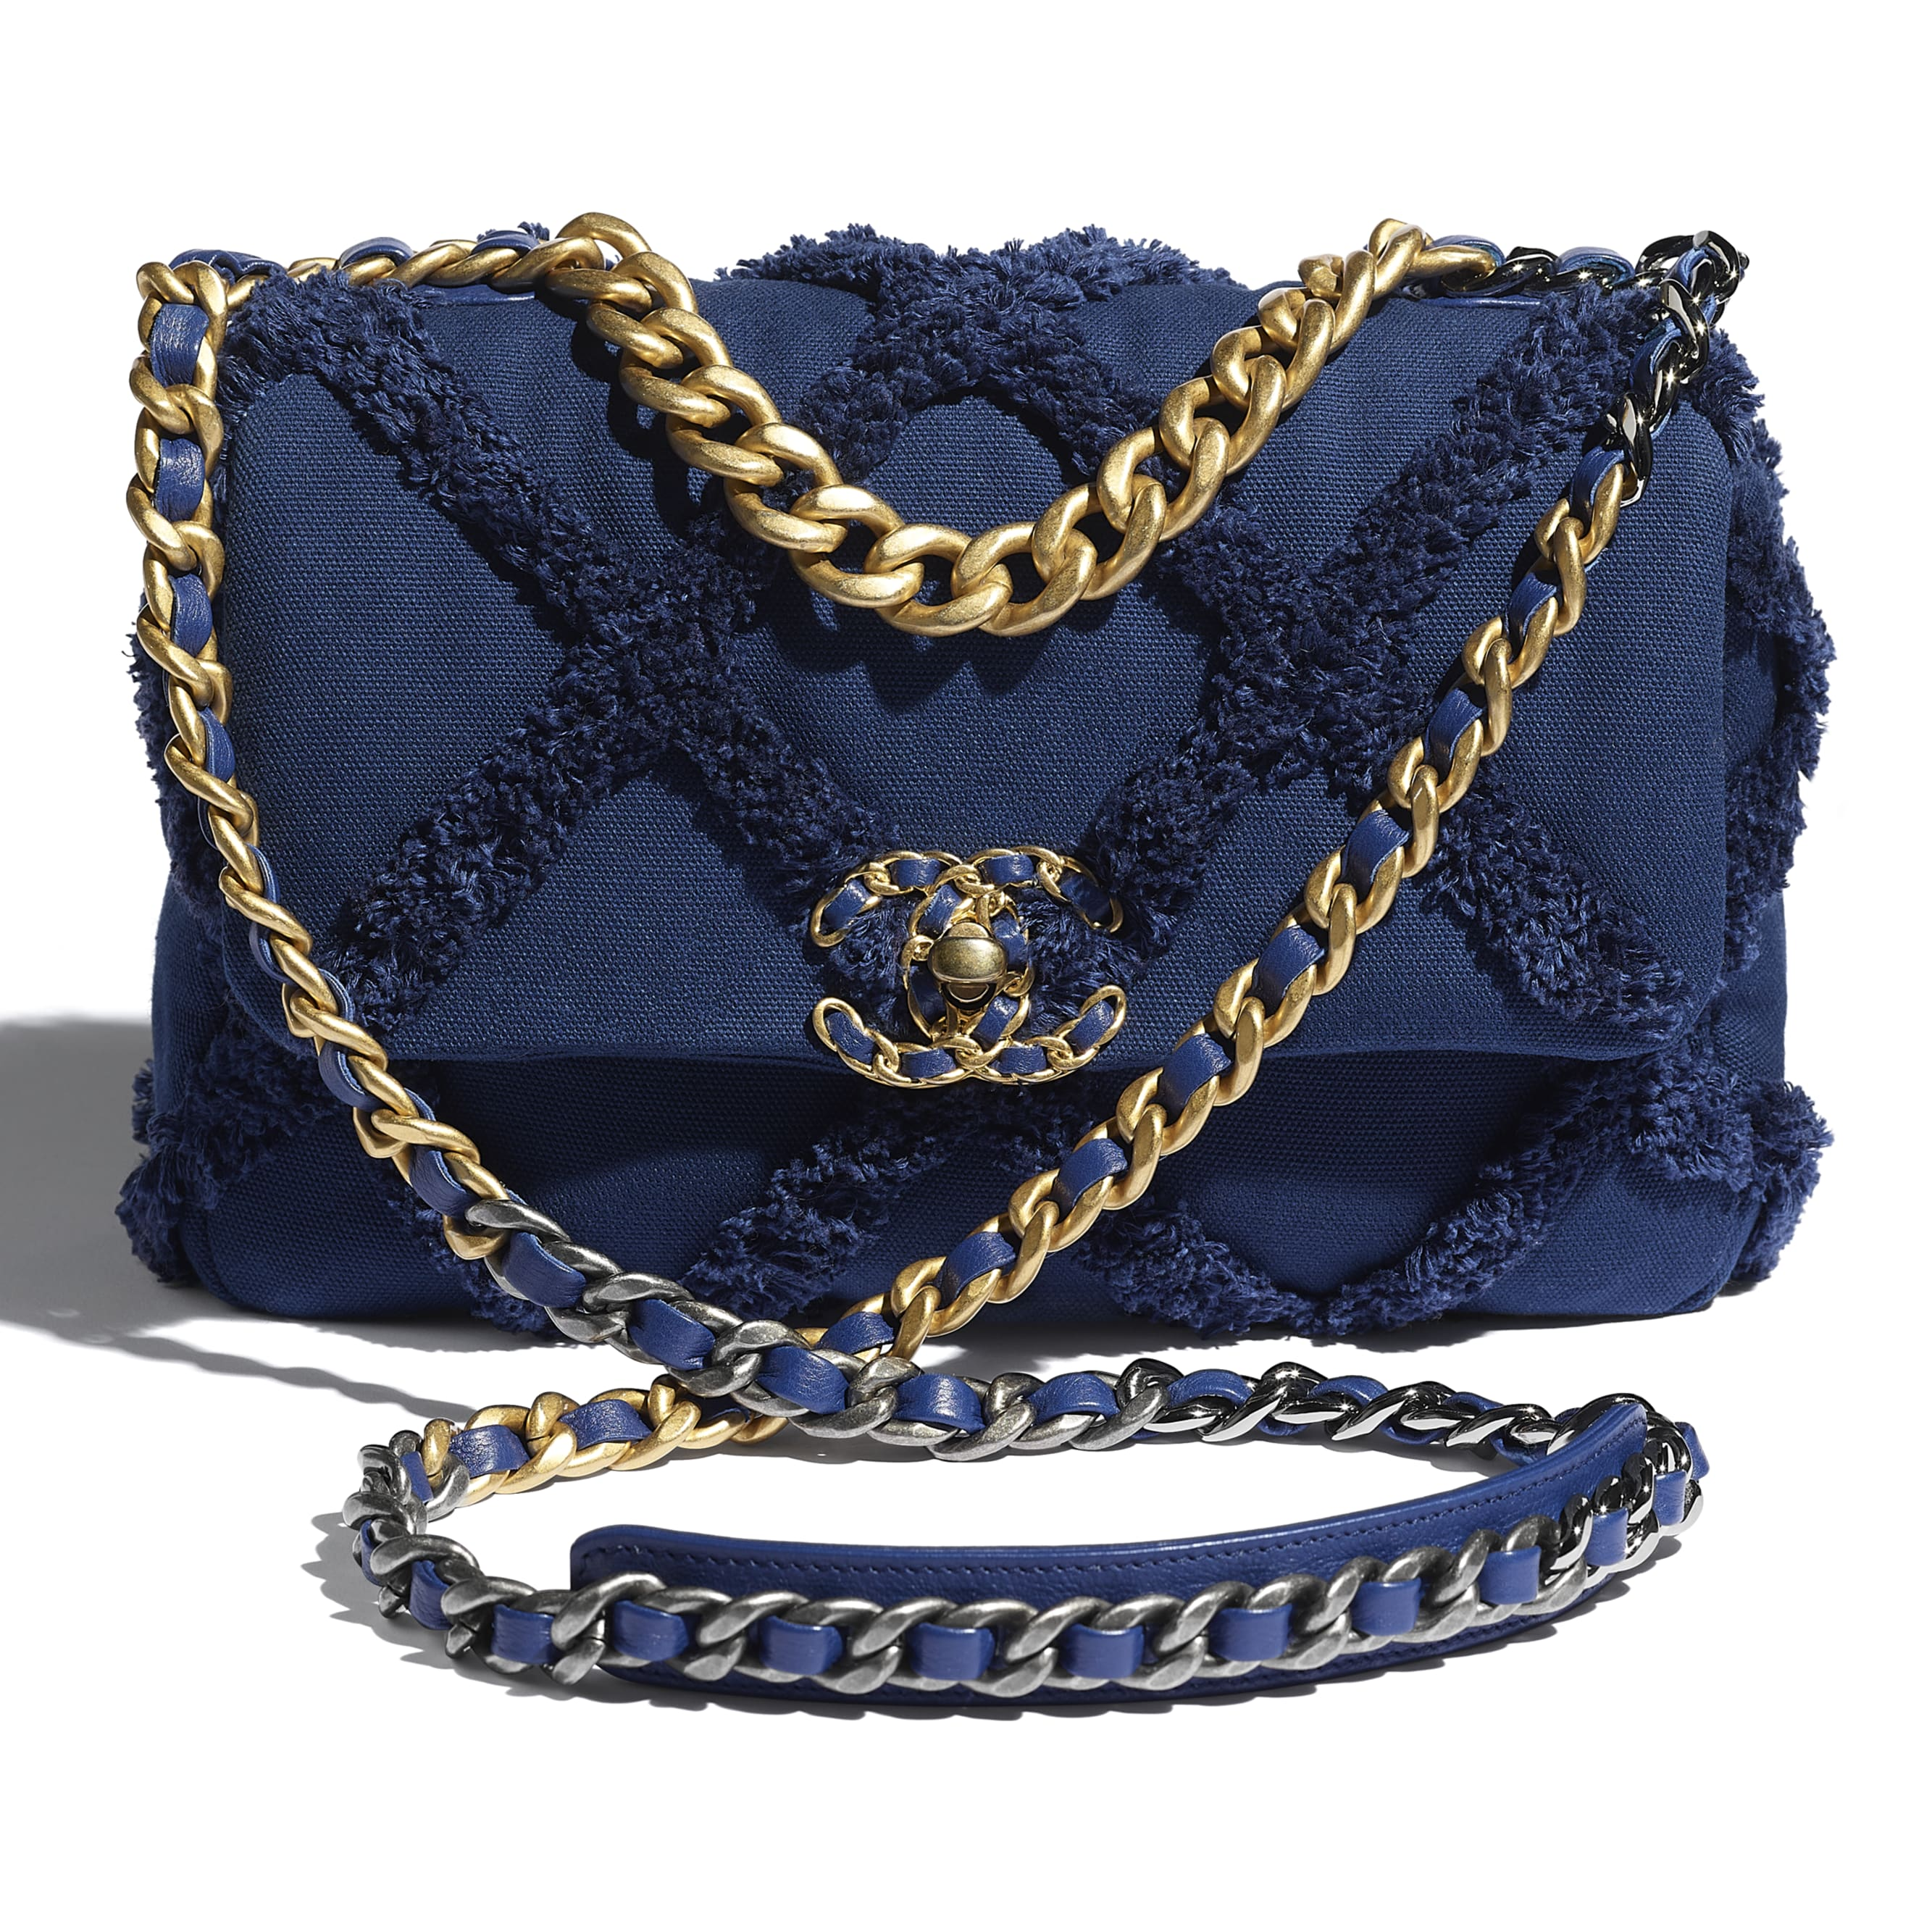 CHANEL 19 Flap Bag - Navy Blue - Cotton Canvas, Calfskin, Gold-Tone, Silver-Tone & Ruthenium-Finish Metal - CHANEL - Extra view - see standard sized version